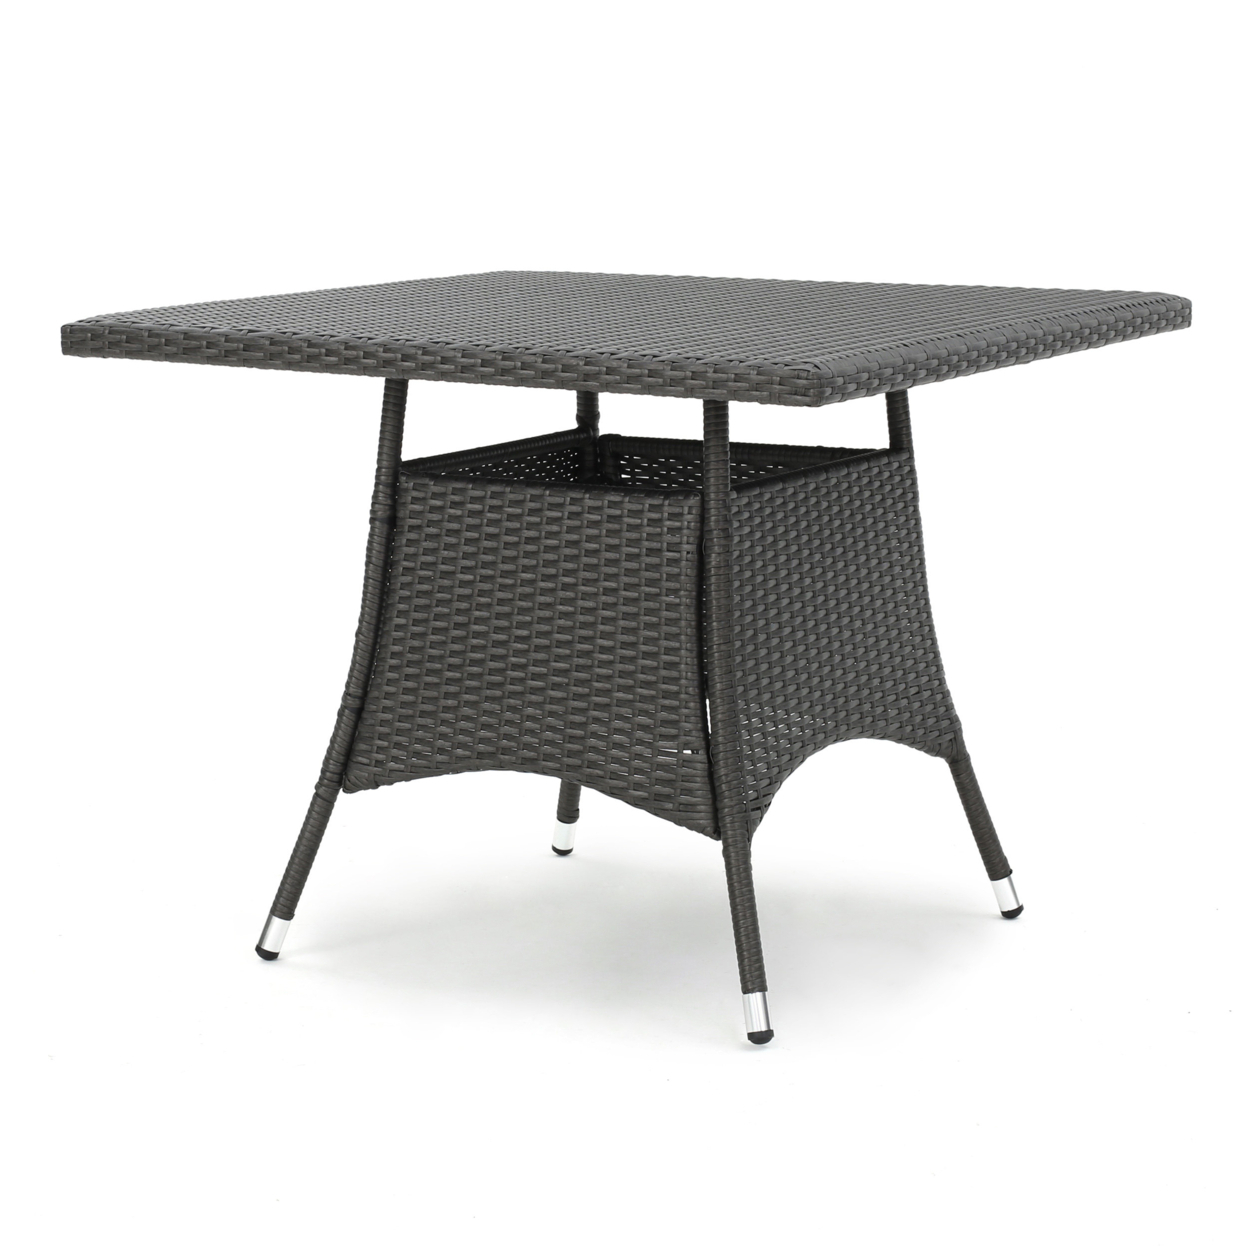 Colonial Outdoor Grey Wicker Square Dining Table